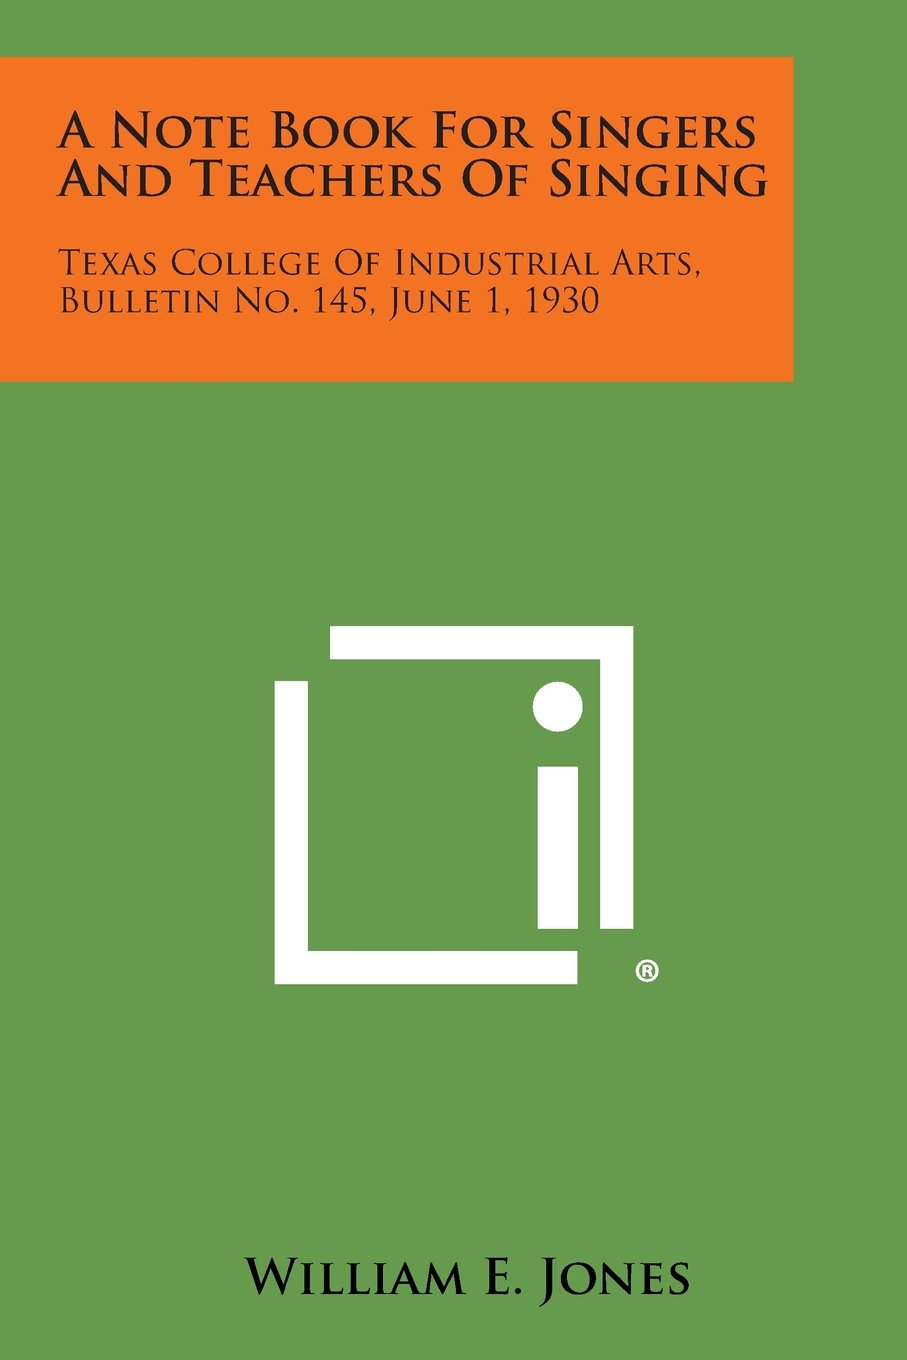 Download A Note Book for Singers and Teachers of Singing: Texas College of Industrial Arts, Bulletin No. 145, June 1, 1930 pdf